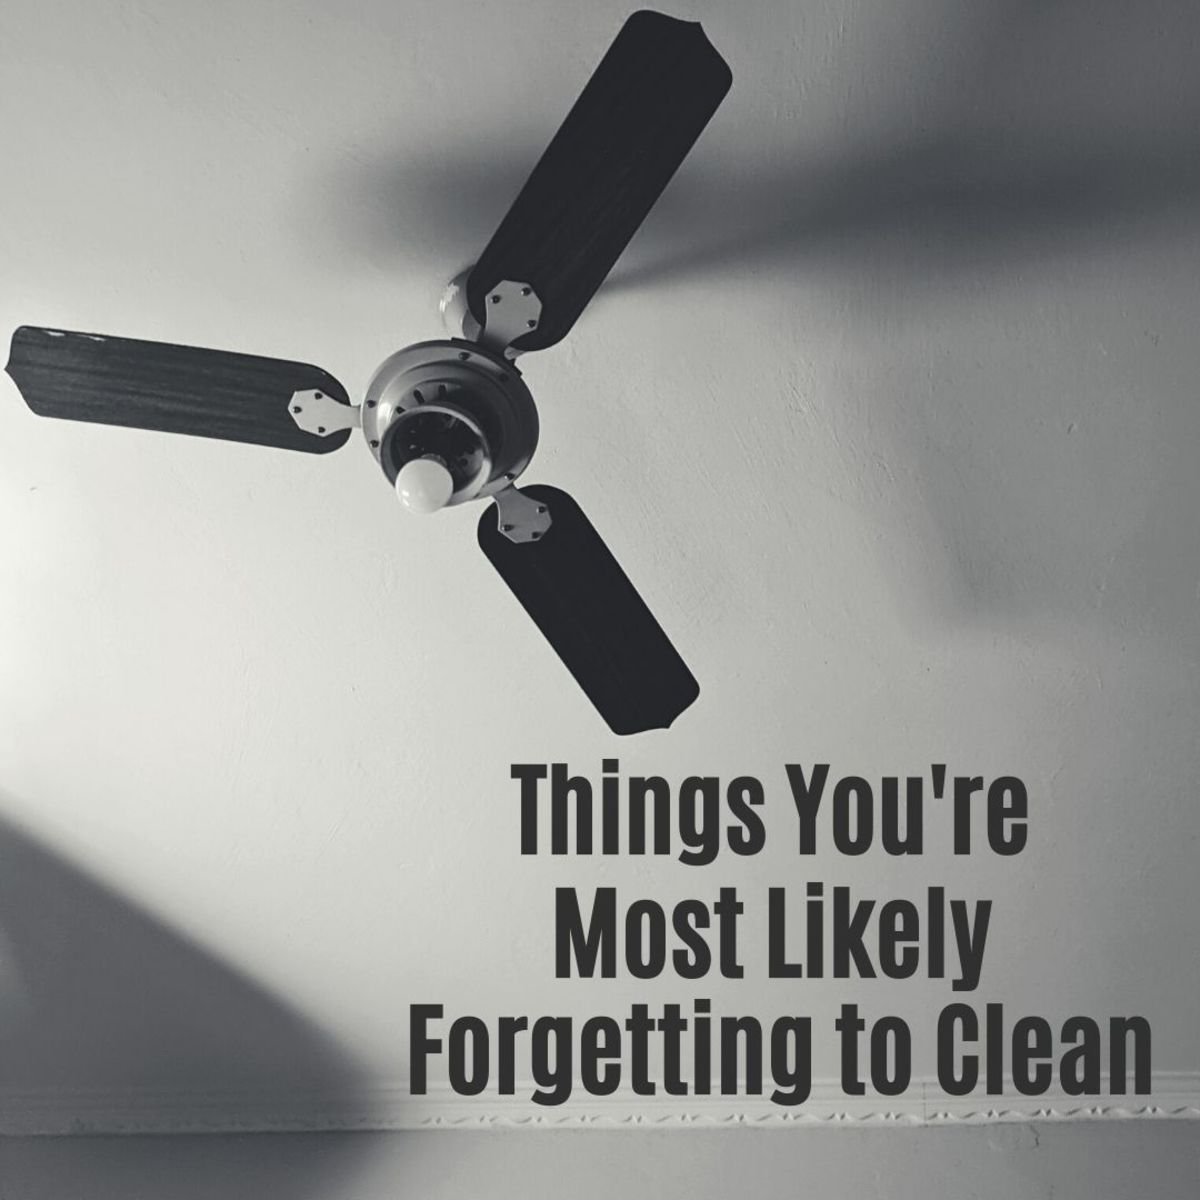 What things do you forget to clean?